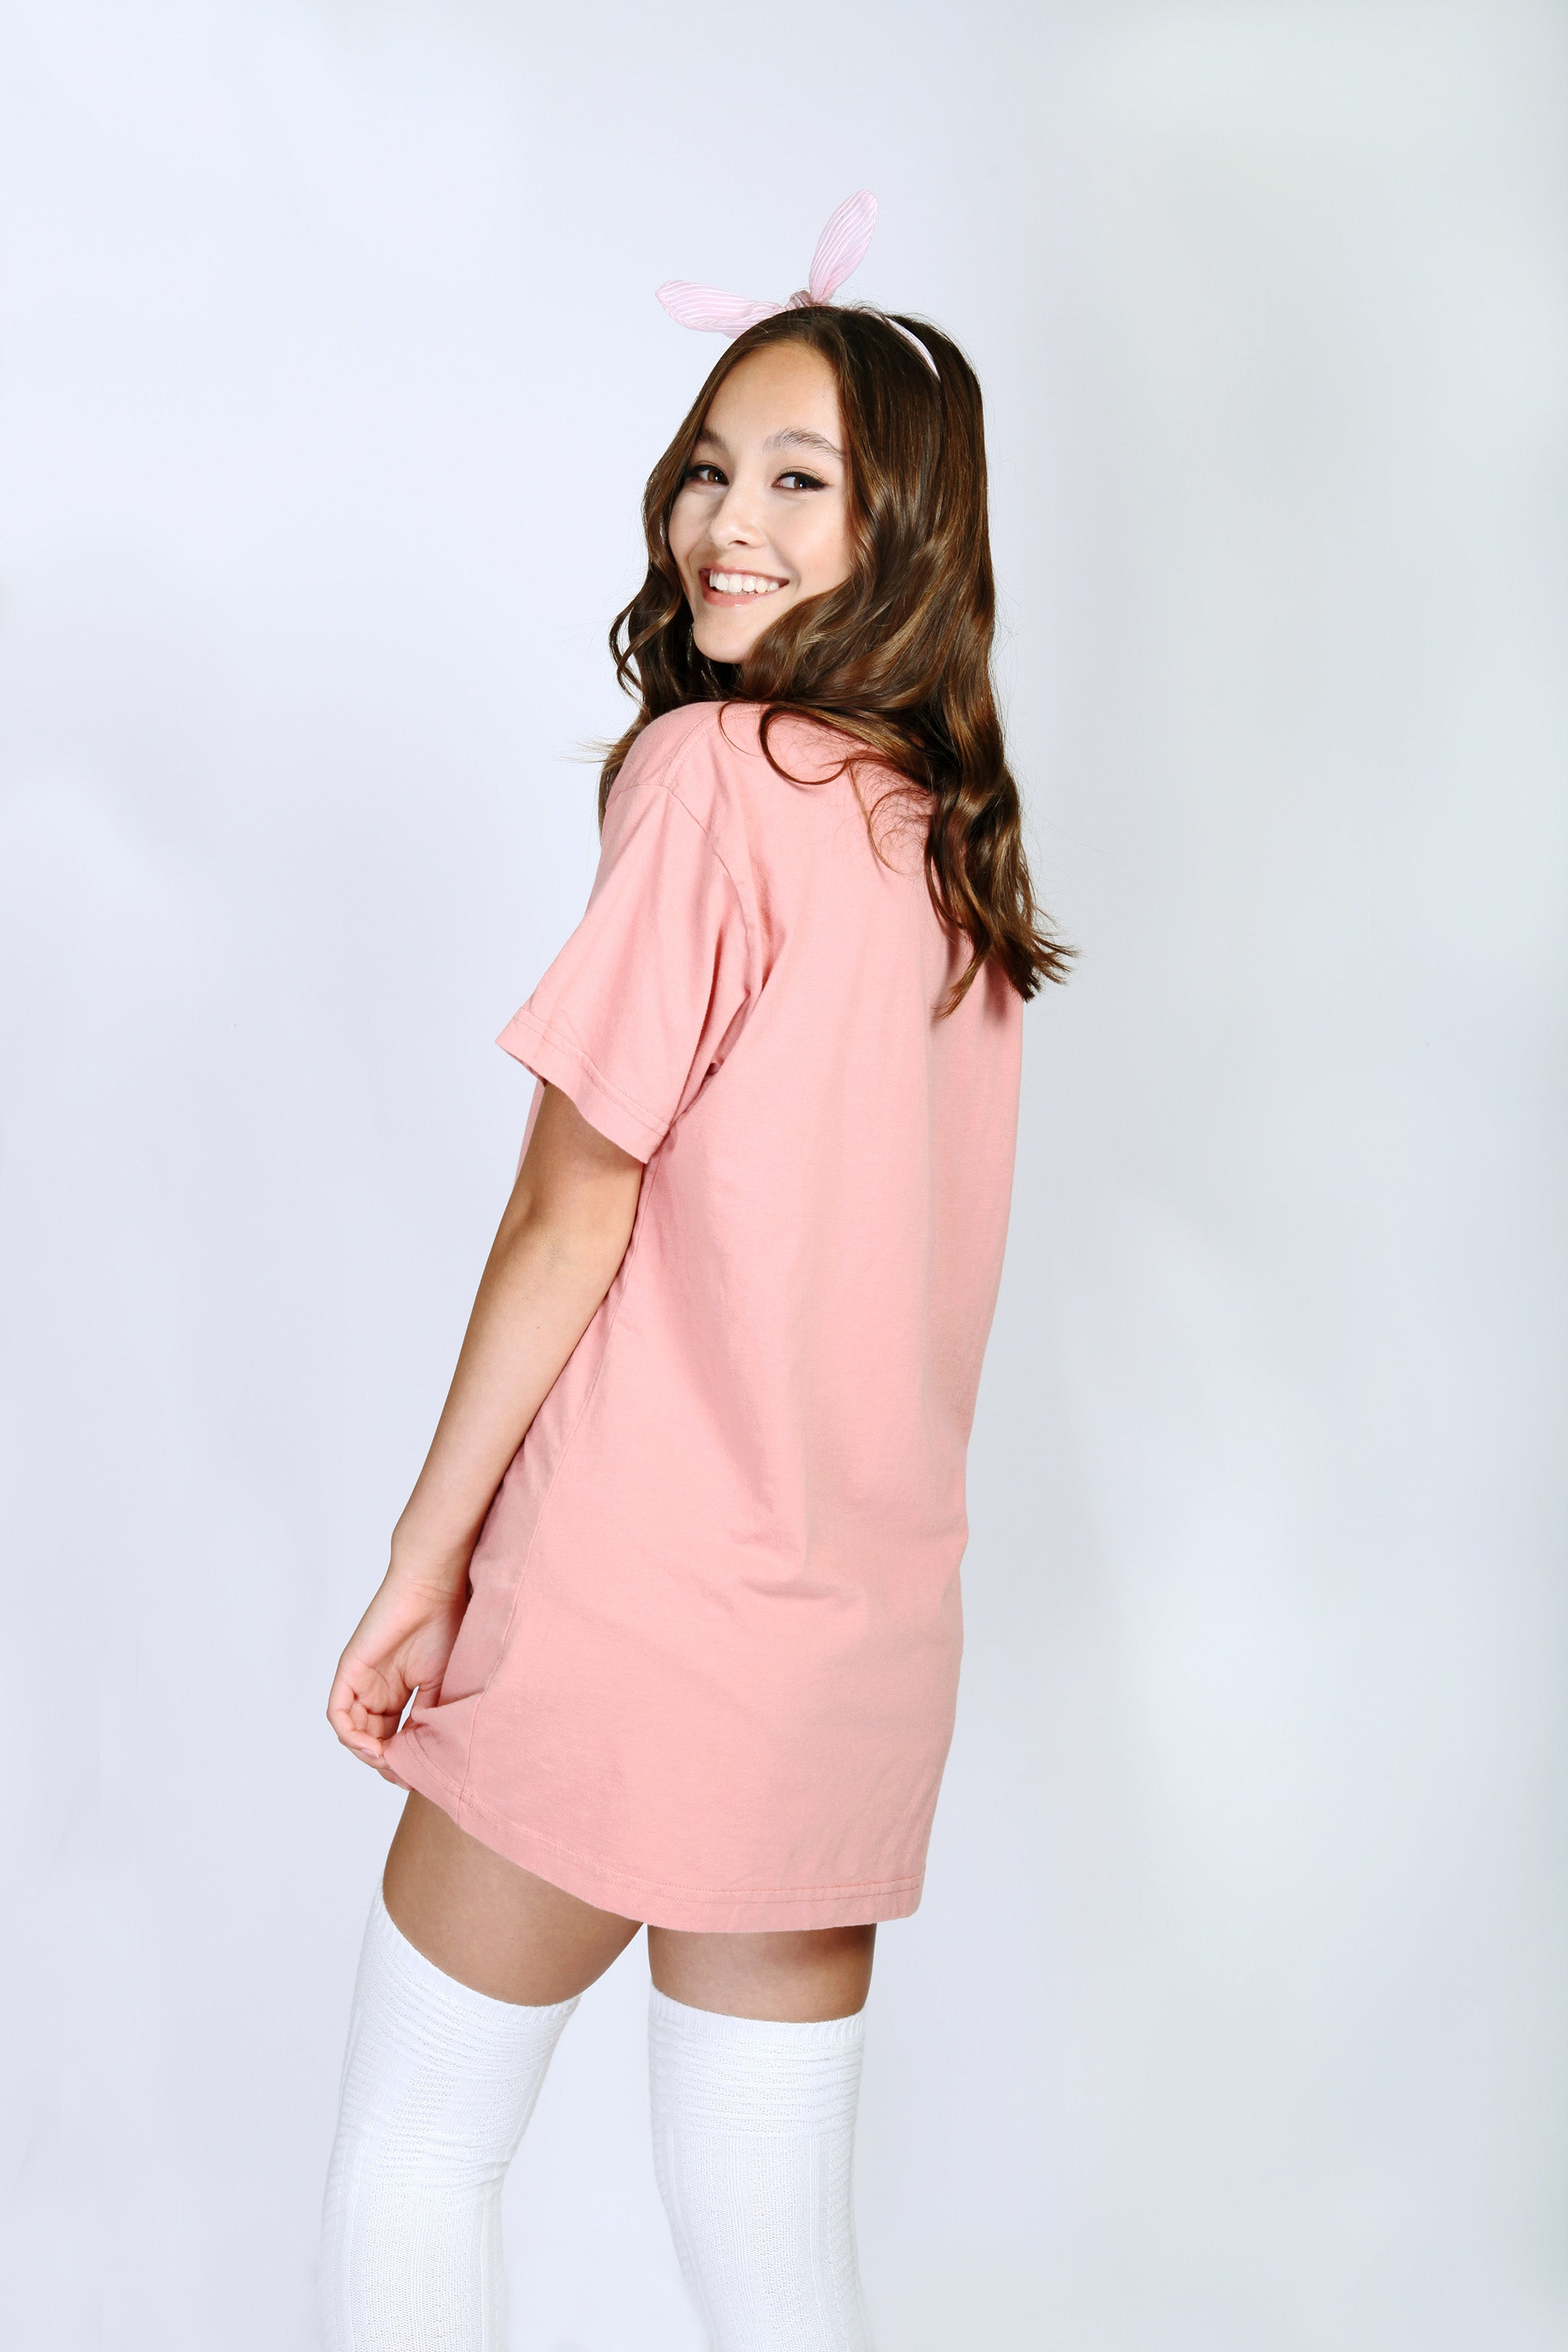 Cream Coral Super Comfy Oversized Cotton T-shirt Crew Back View